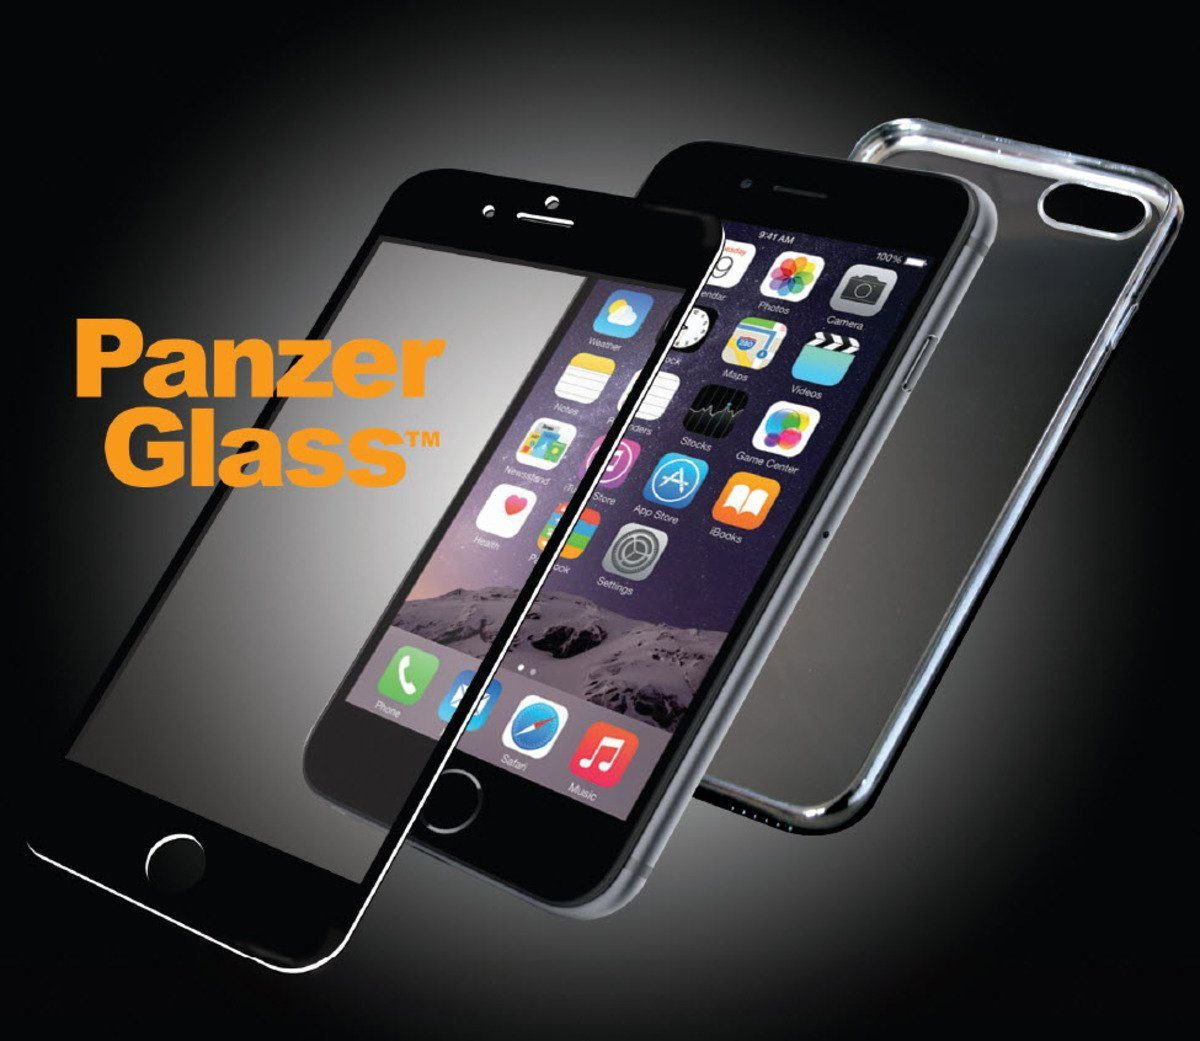 Panzerglass Folie  PanzerGlass PREMIUM iPhone Set Apple iPhone PREMIUM 6 6s  online ... 86f78b